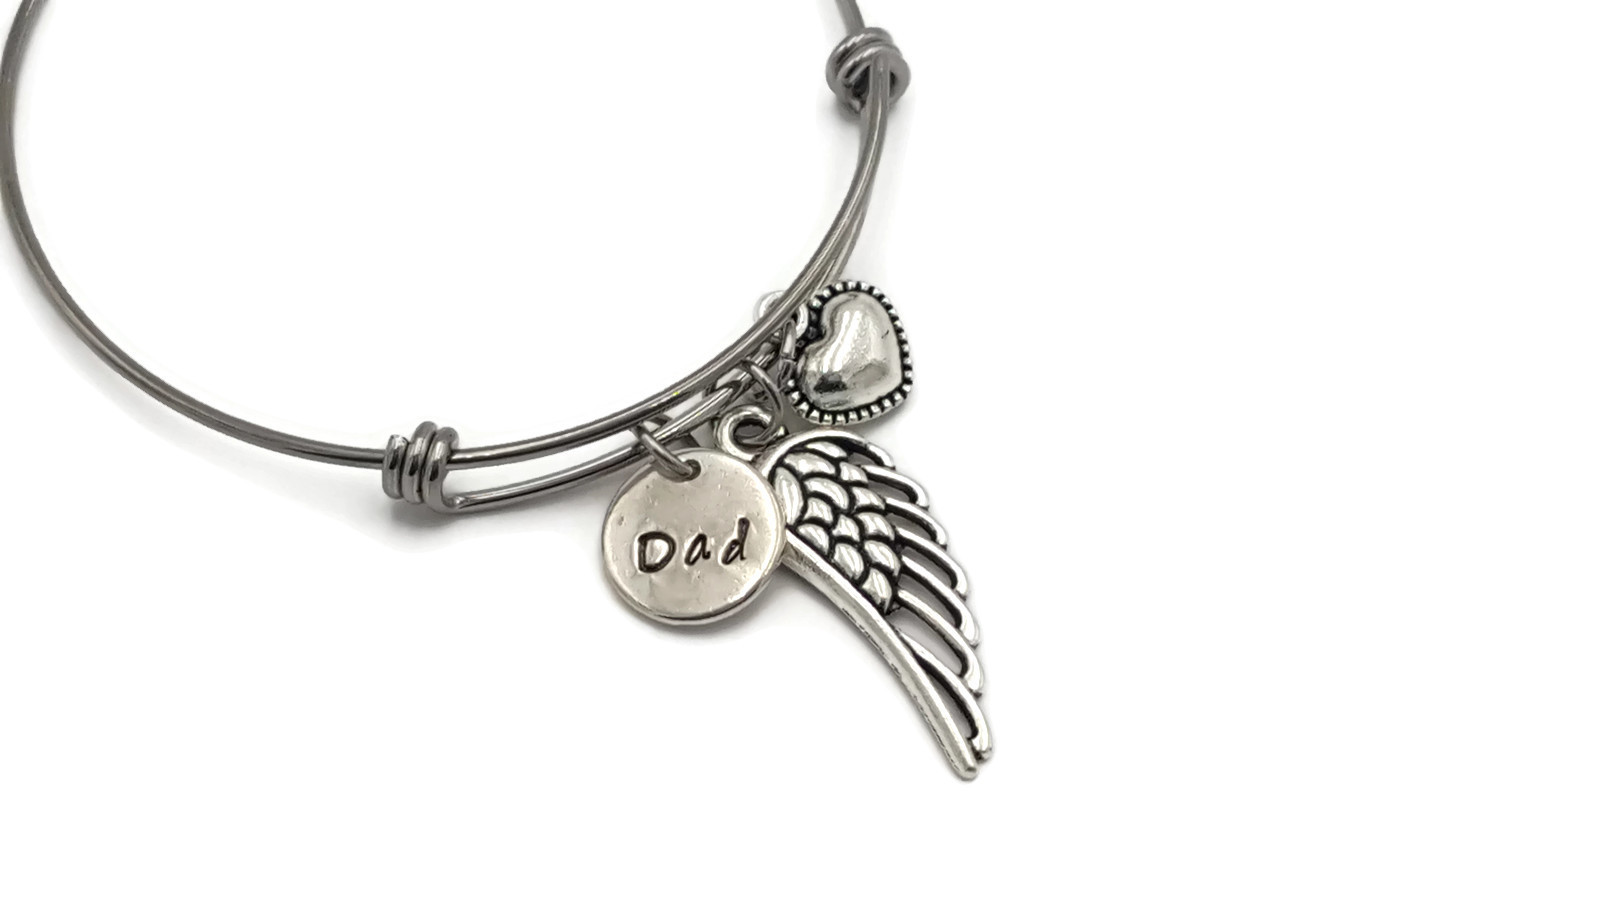 Loss of Dad Memorial Bracelet - In Loving Memory of Father - Free Shipping